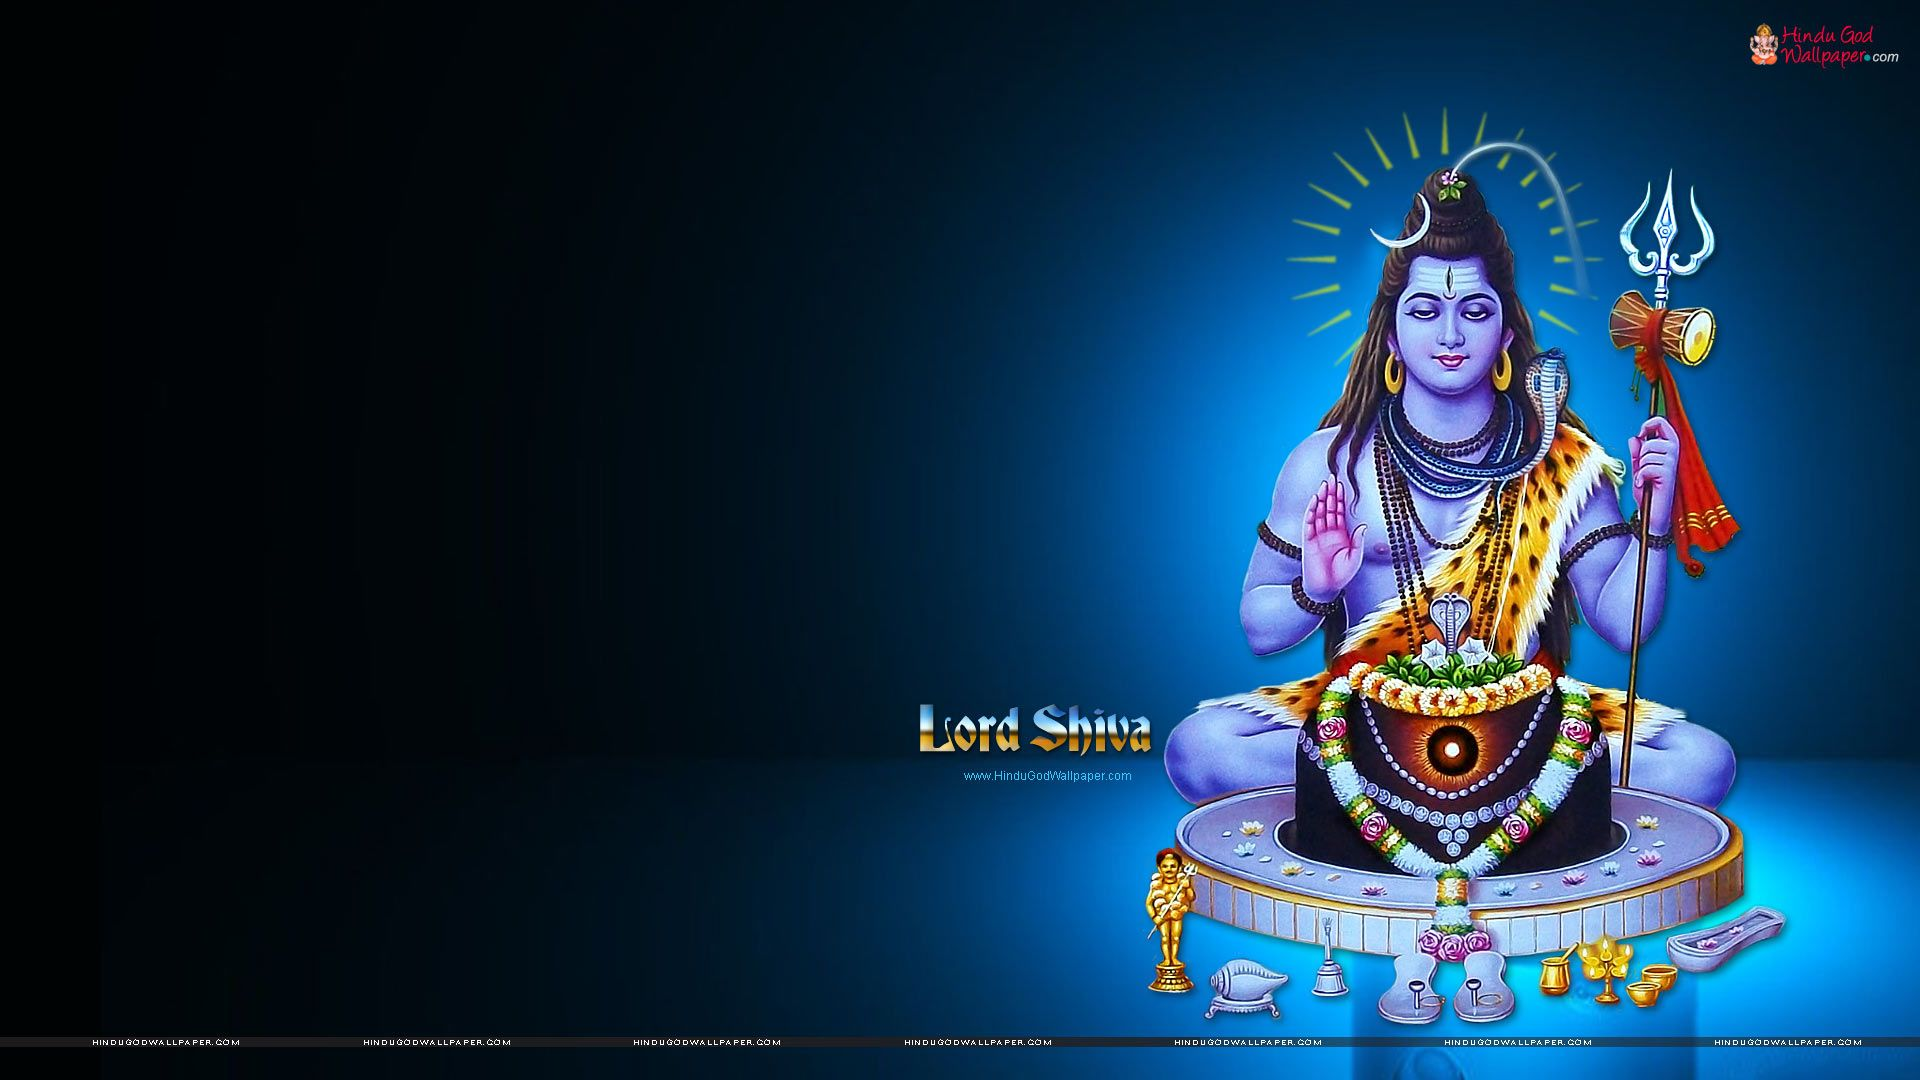 Most Inspiring Wallpaper Lord Shiv - d3b3f6619e0c5b91f225c3c496d62f43  Collection_845069.jpg